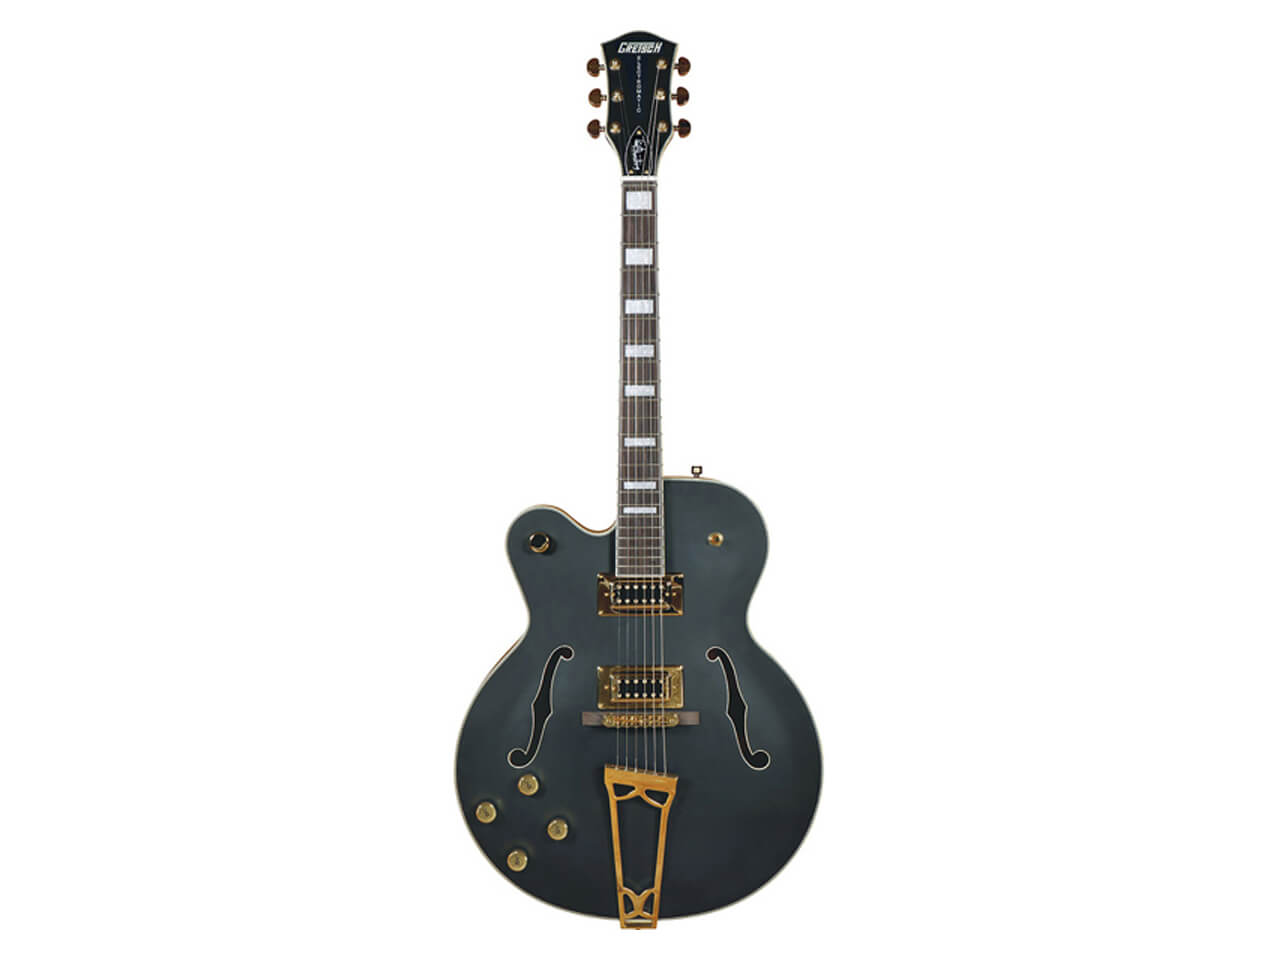 Gretsch Electromatic / G5191BK LH Tim Armstrong Sig. Left Handed